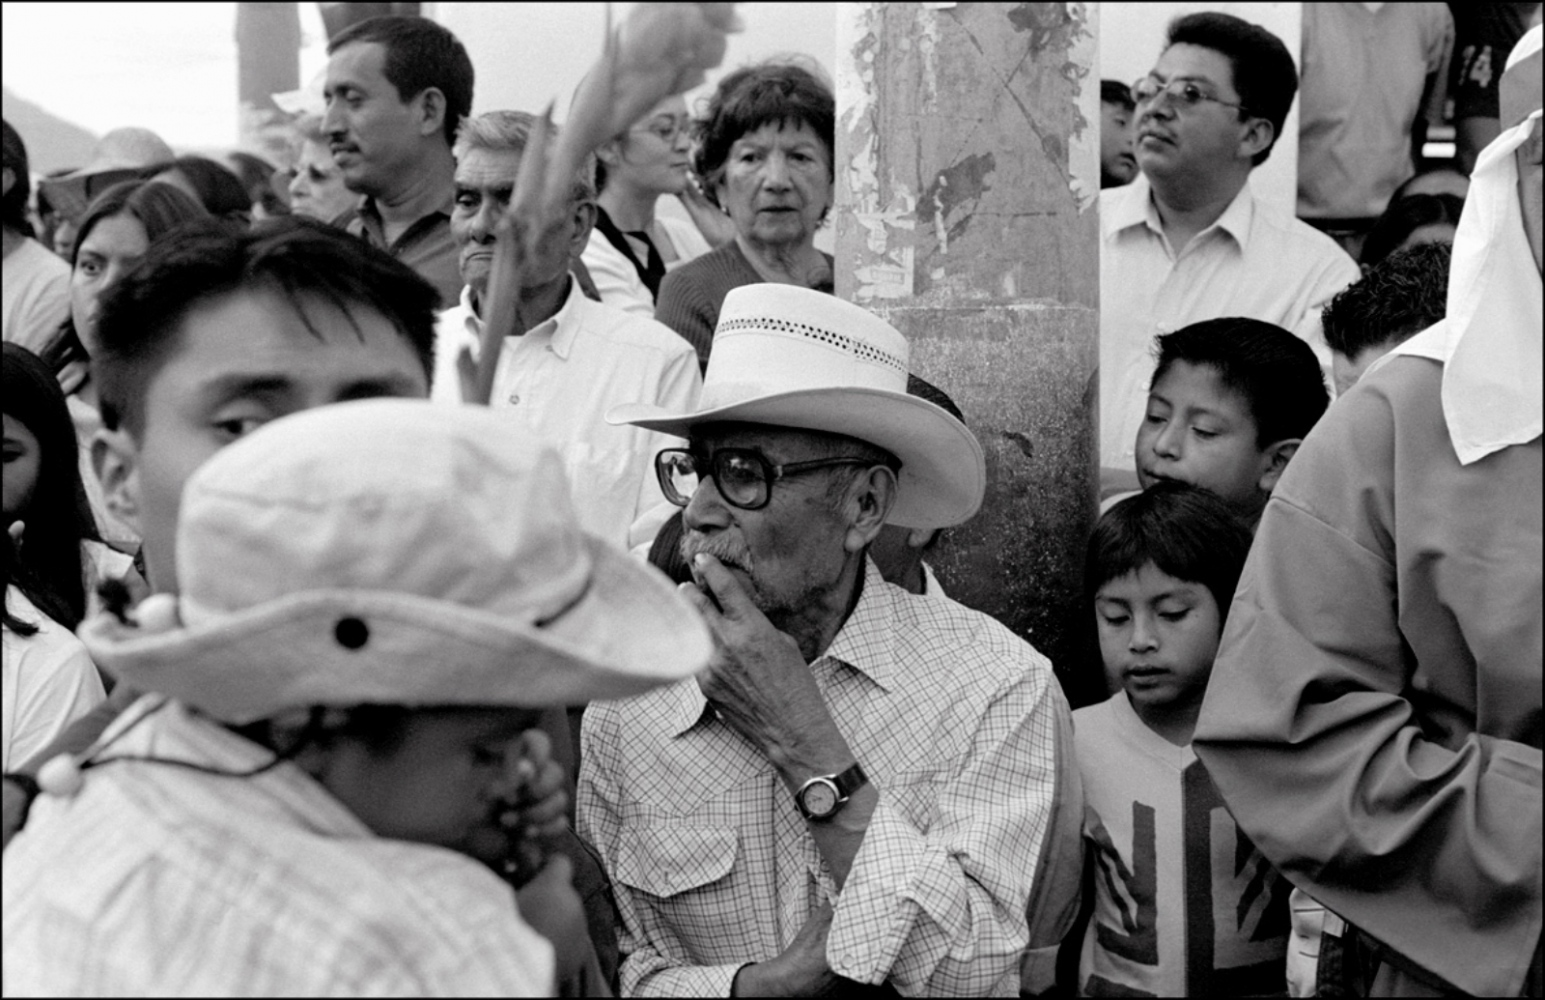 Man with Glasses in Crowd, Antigua, Guatemala, April 2006